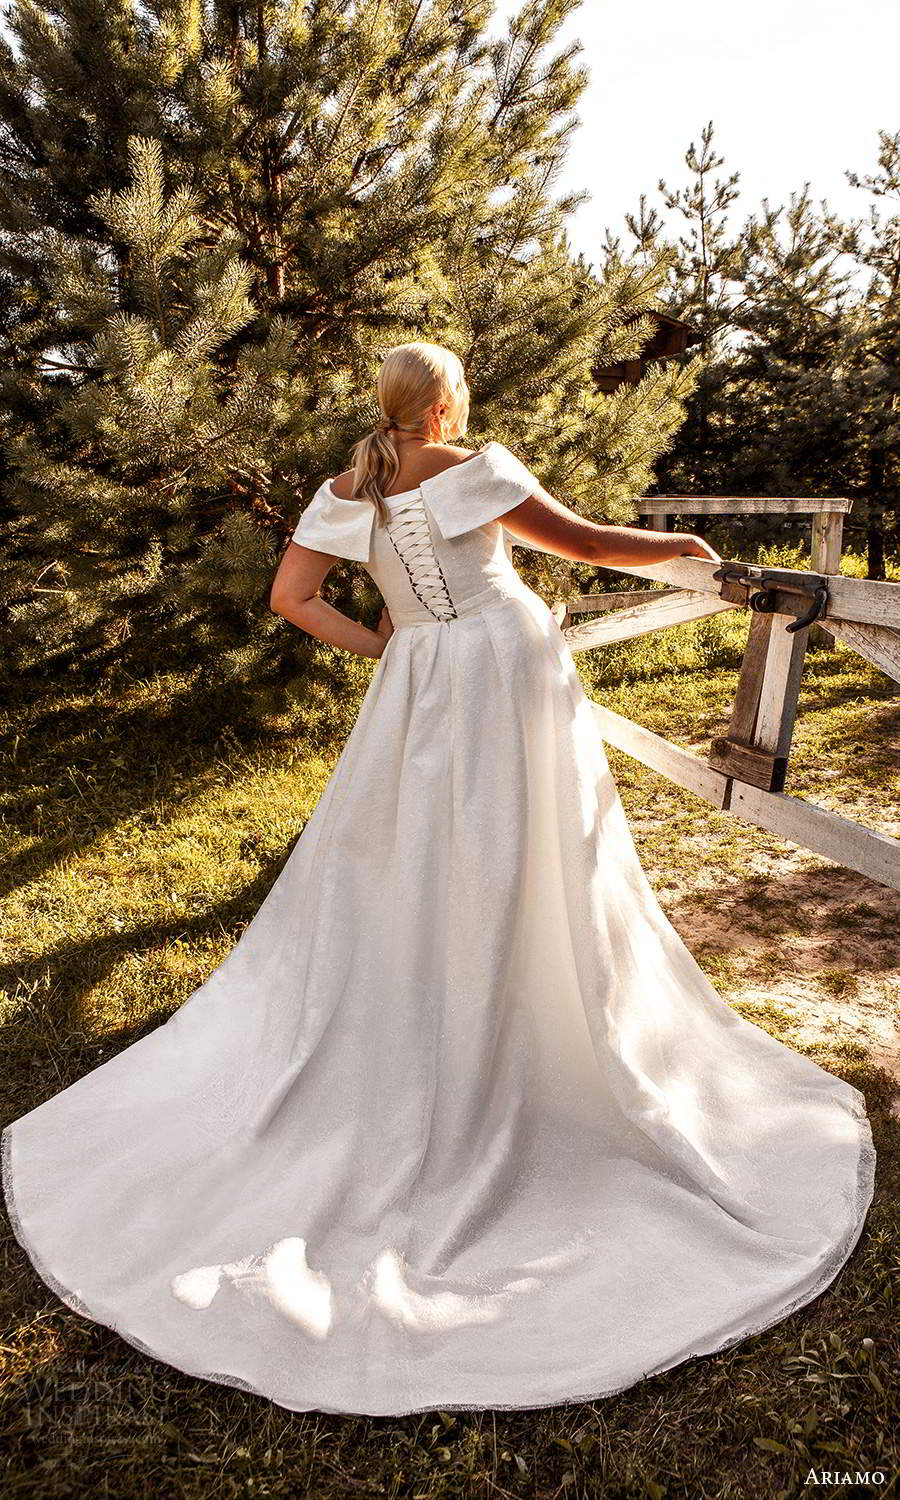 ariamo 2021 plus bridal off shoulder short sleeves cross over v neckline corset bodice minimalist a line ball gown wedding dress chapel train (6) bv